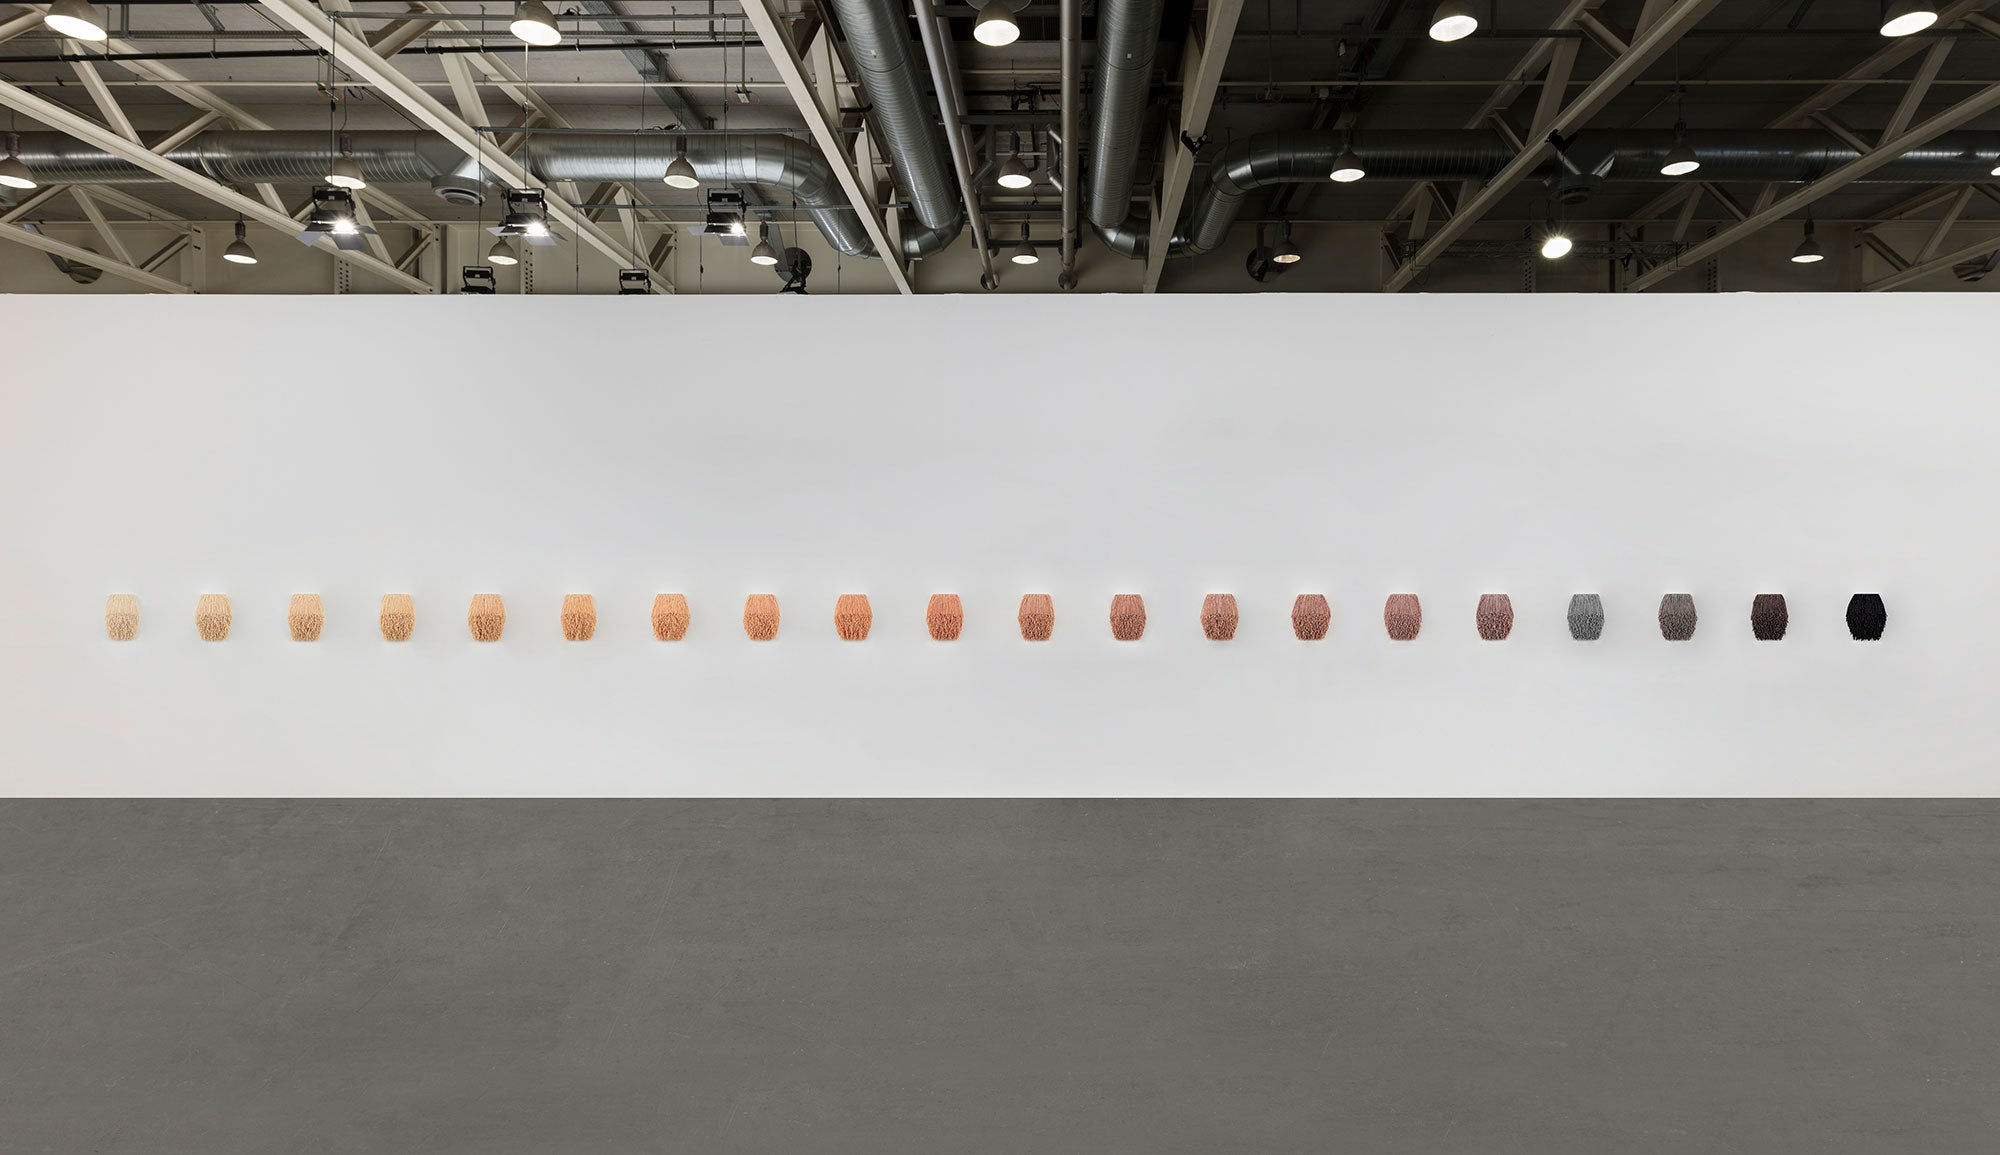 Massimo De Carlo Paola Pivi, Call Me Anything You Want, 2013. Courtesy of the artist and the gallery. Vía Art Basel